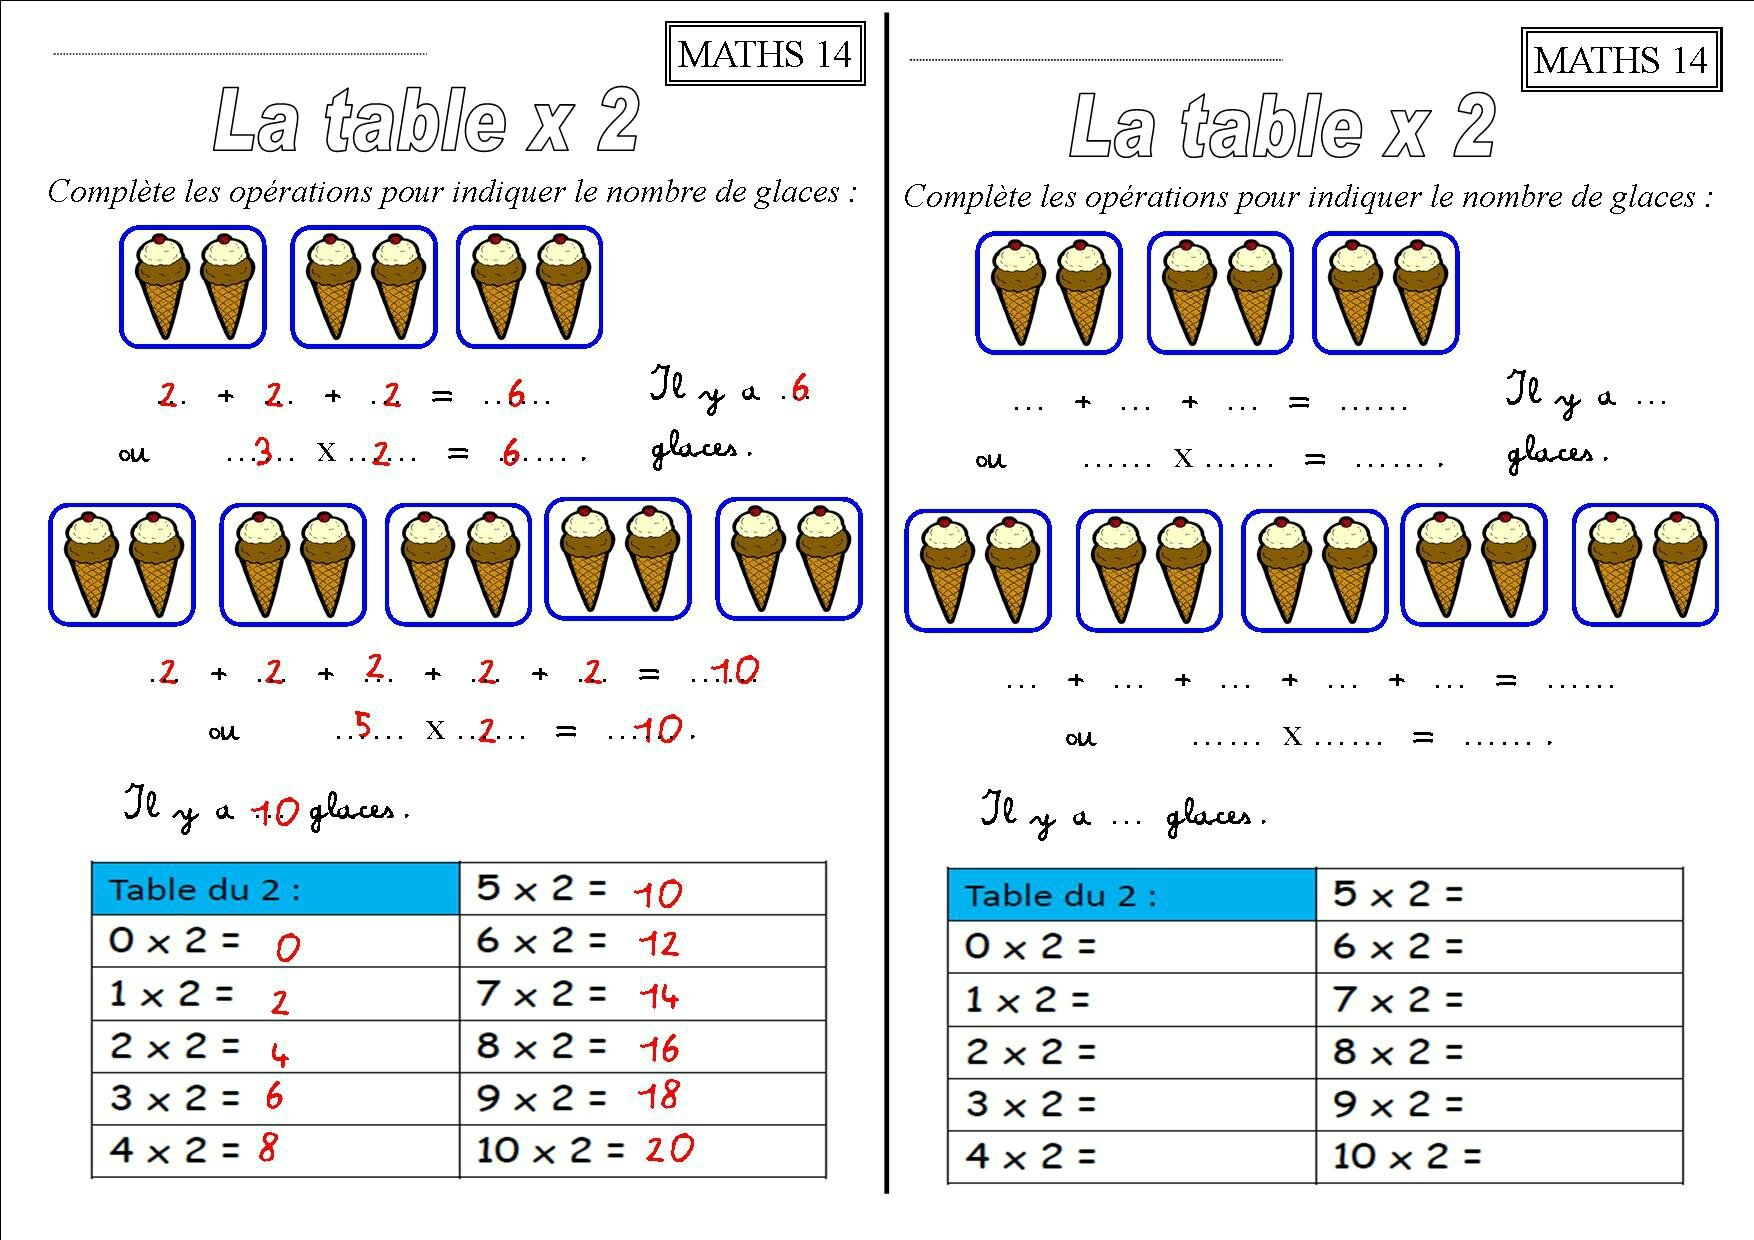 Les tables de multiplication ce1 x 2 x 3 x 4 x 5 x - Les table de multiplication de a ...